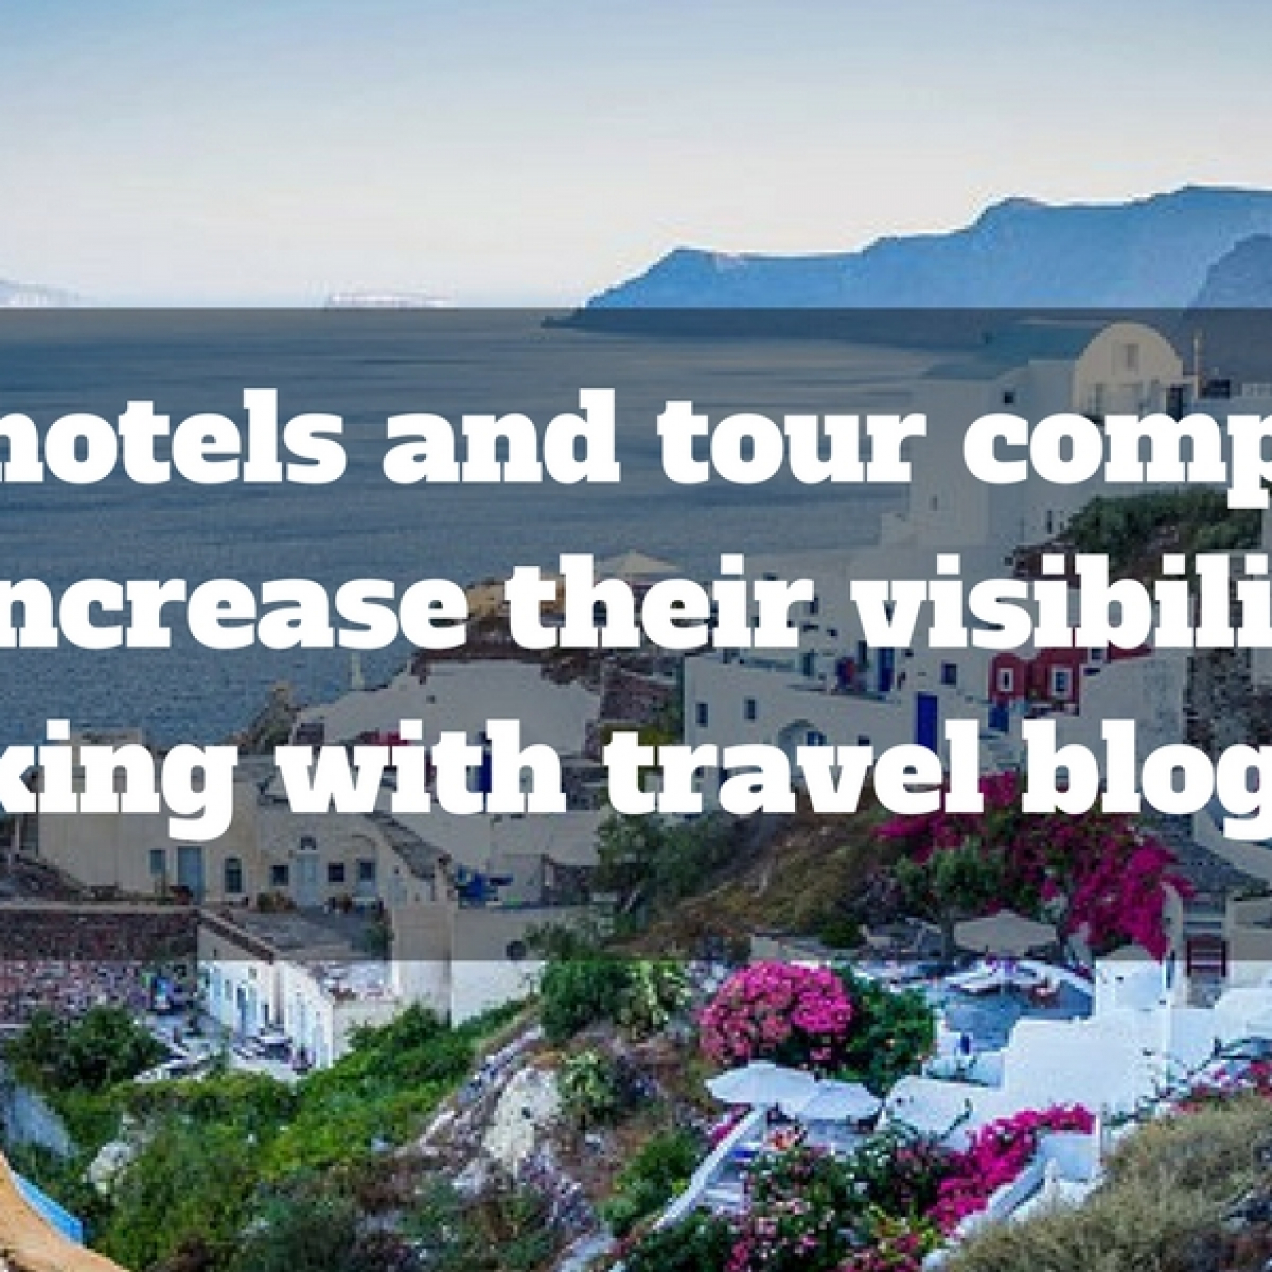 How hotels and tour companies can increase their visibility by working with travel bloggers